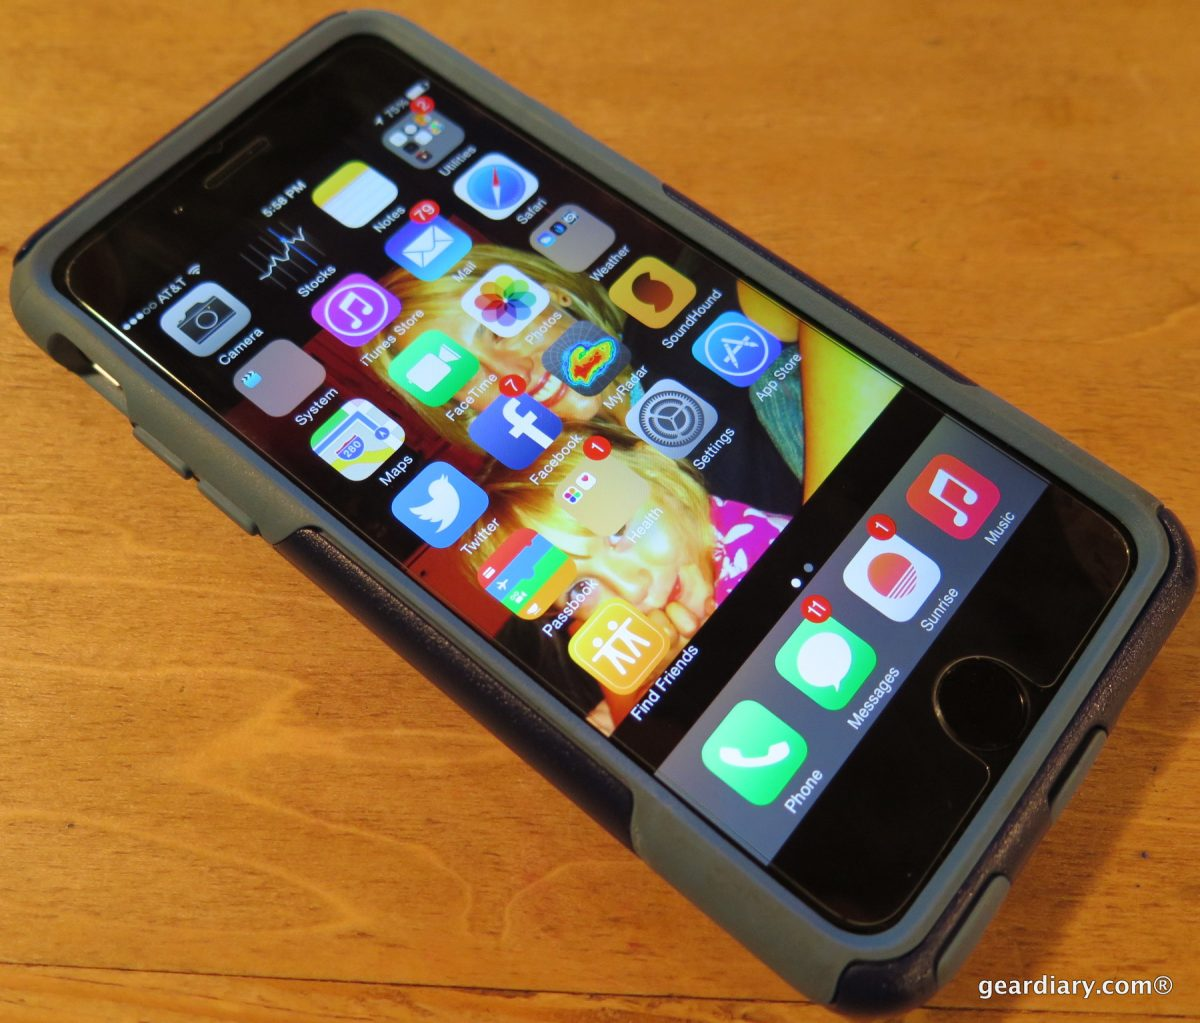 GearDiary An Android User's Thoughts on iOS: Likes and Dislikes